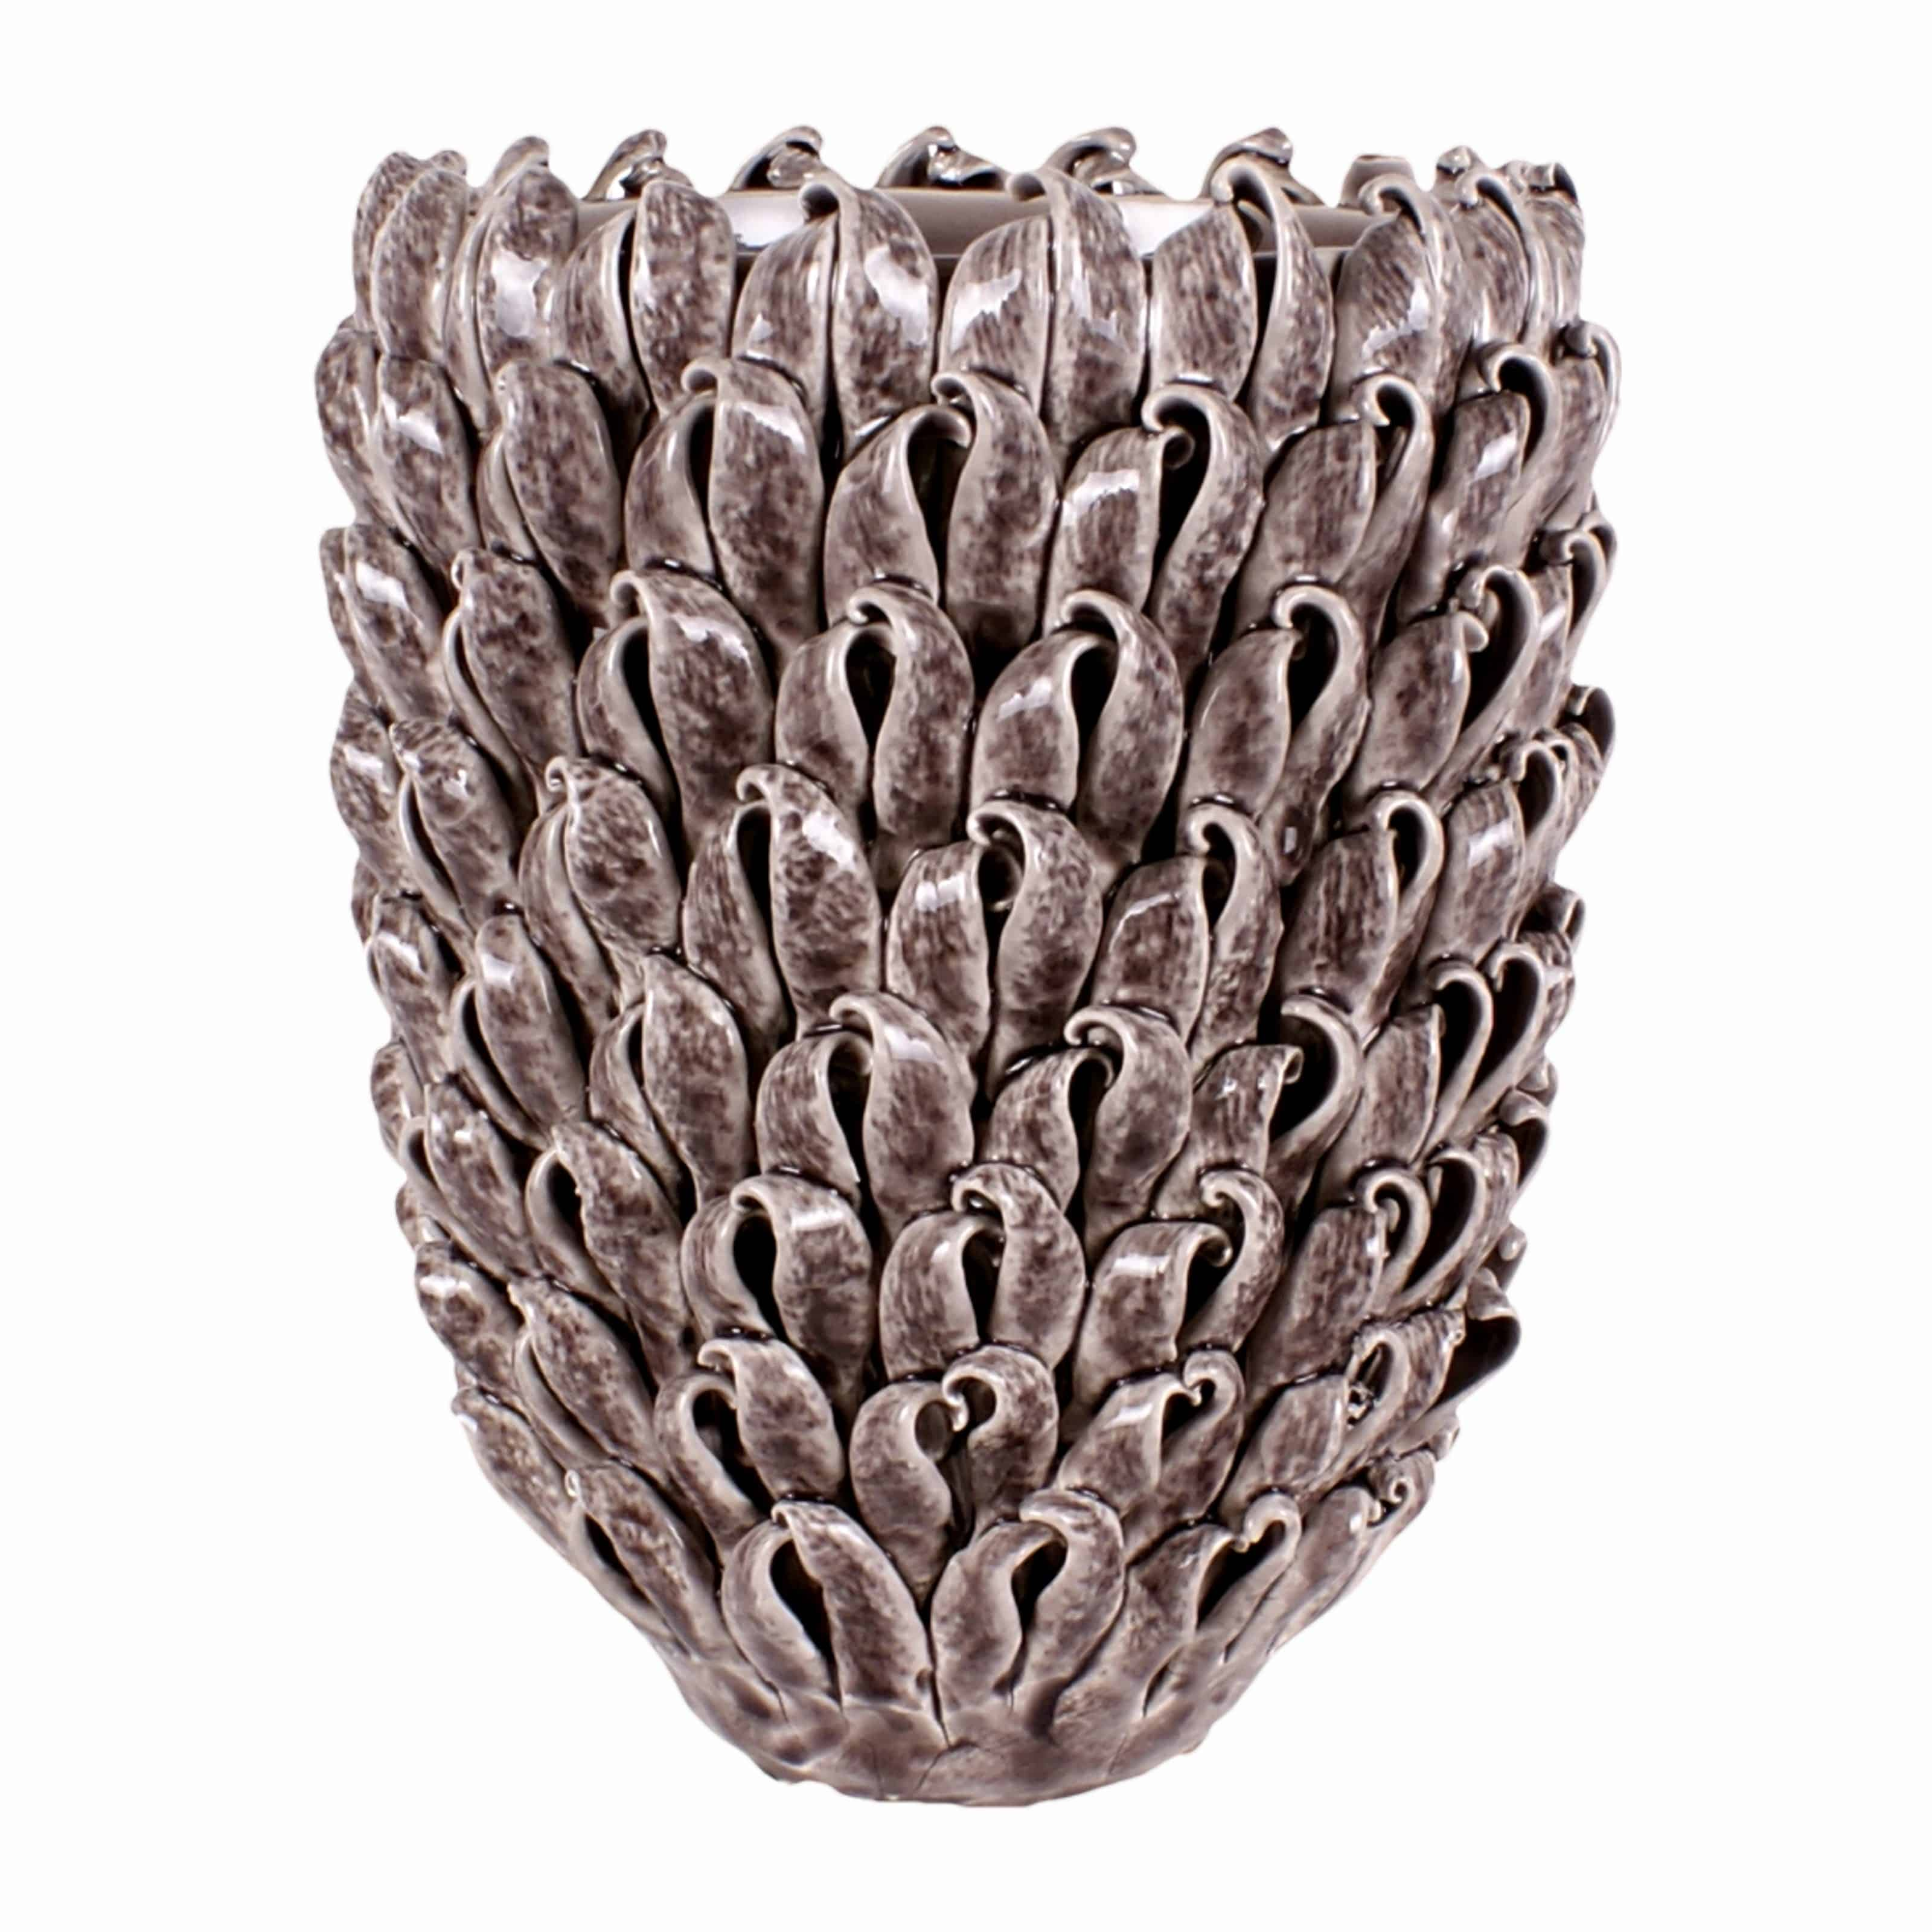 Buy our distinctive hand made seashell effect ceramic flower vase. Strong enough for large flower arrangements and plants. A modern showpiece for any home.